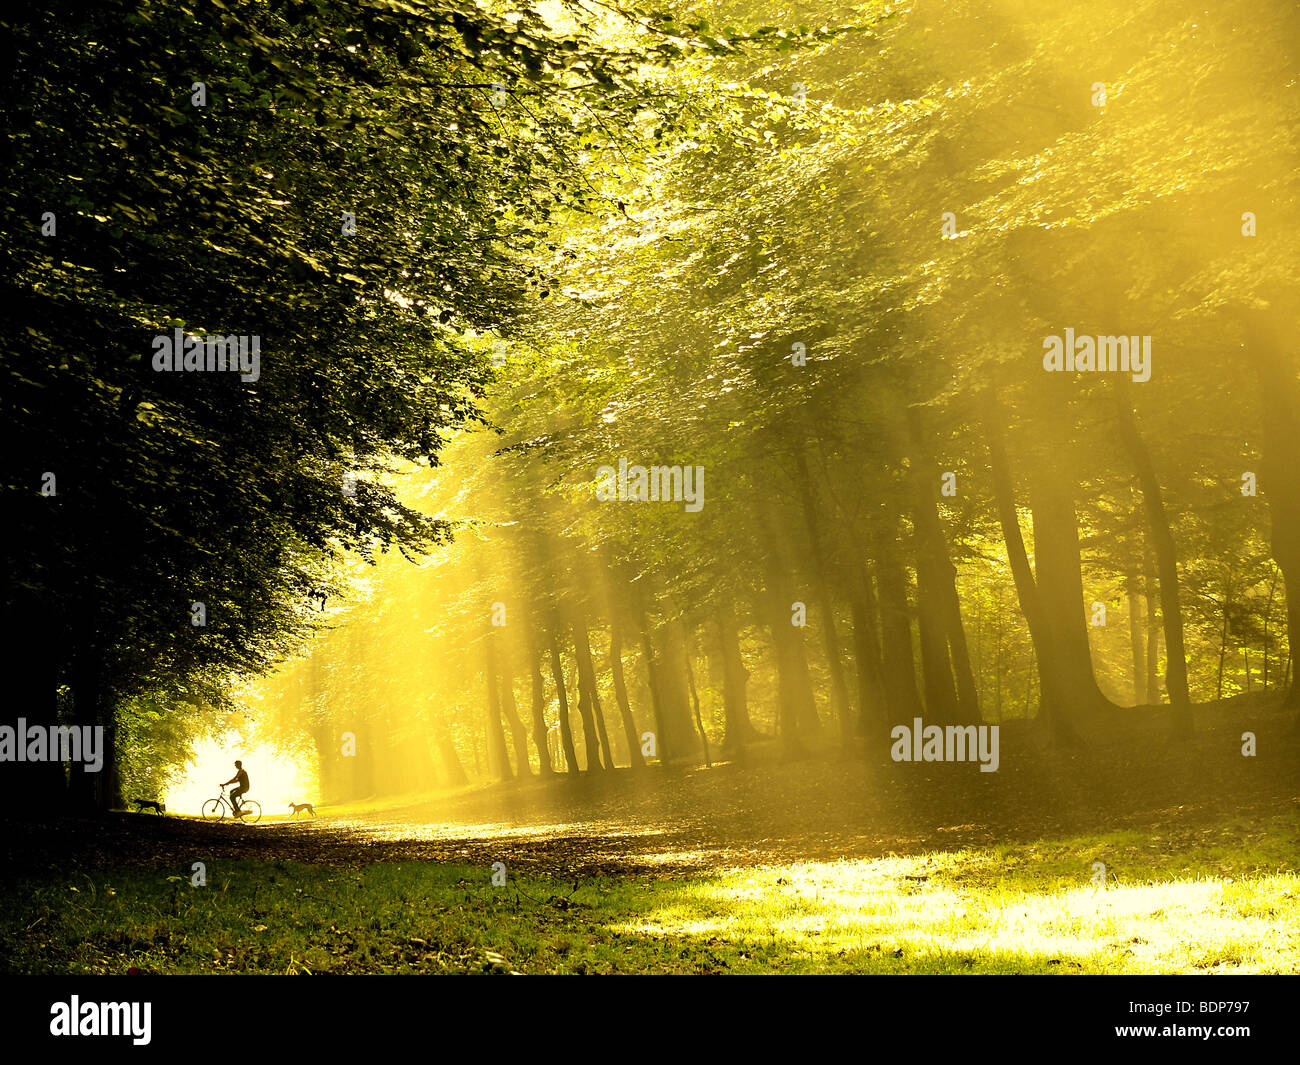 A lone cyclist with dogs in the woods with strong sunlight shining on the path - Stock Image